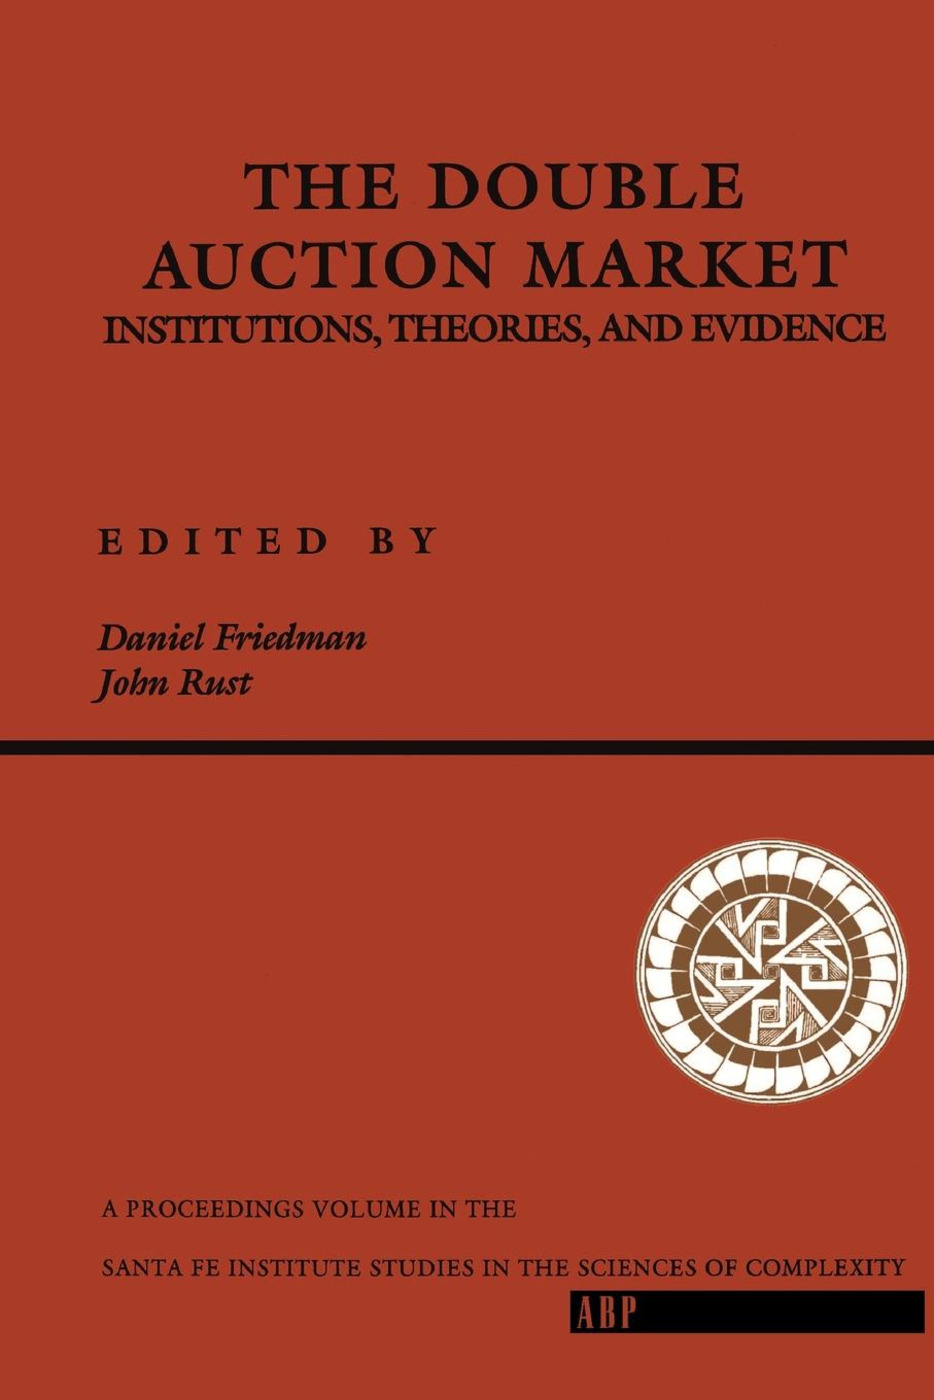 The Double Auction Market: Institutions, Theories, And Evidence book cover